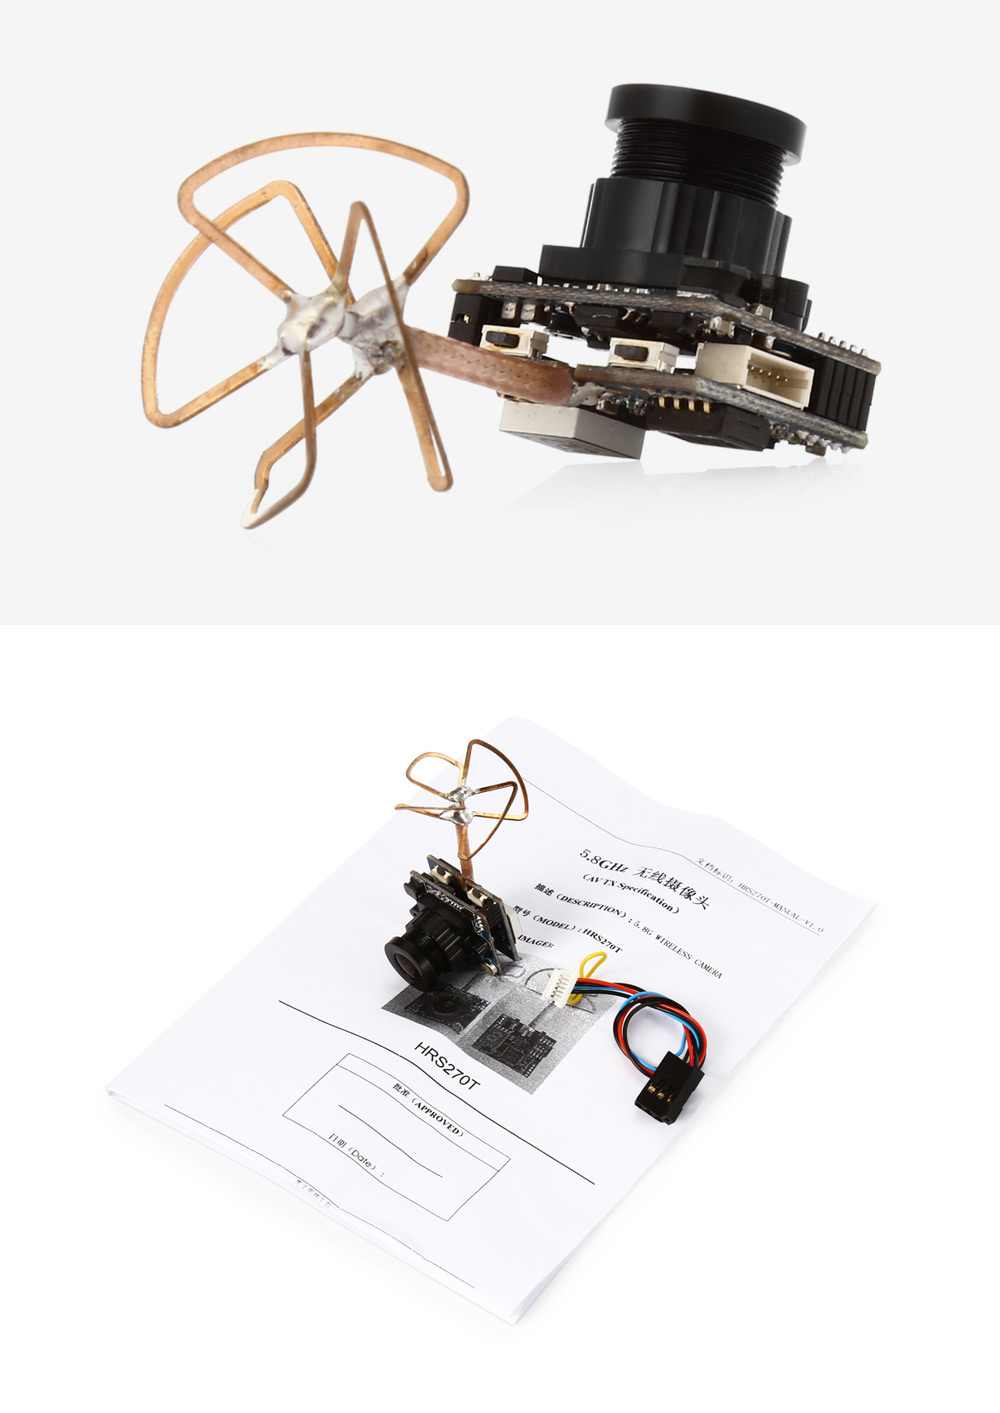 HRS270T 5.8GHz Wireless Camera with Transmitter Antenna for FPV